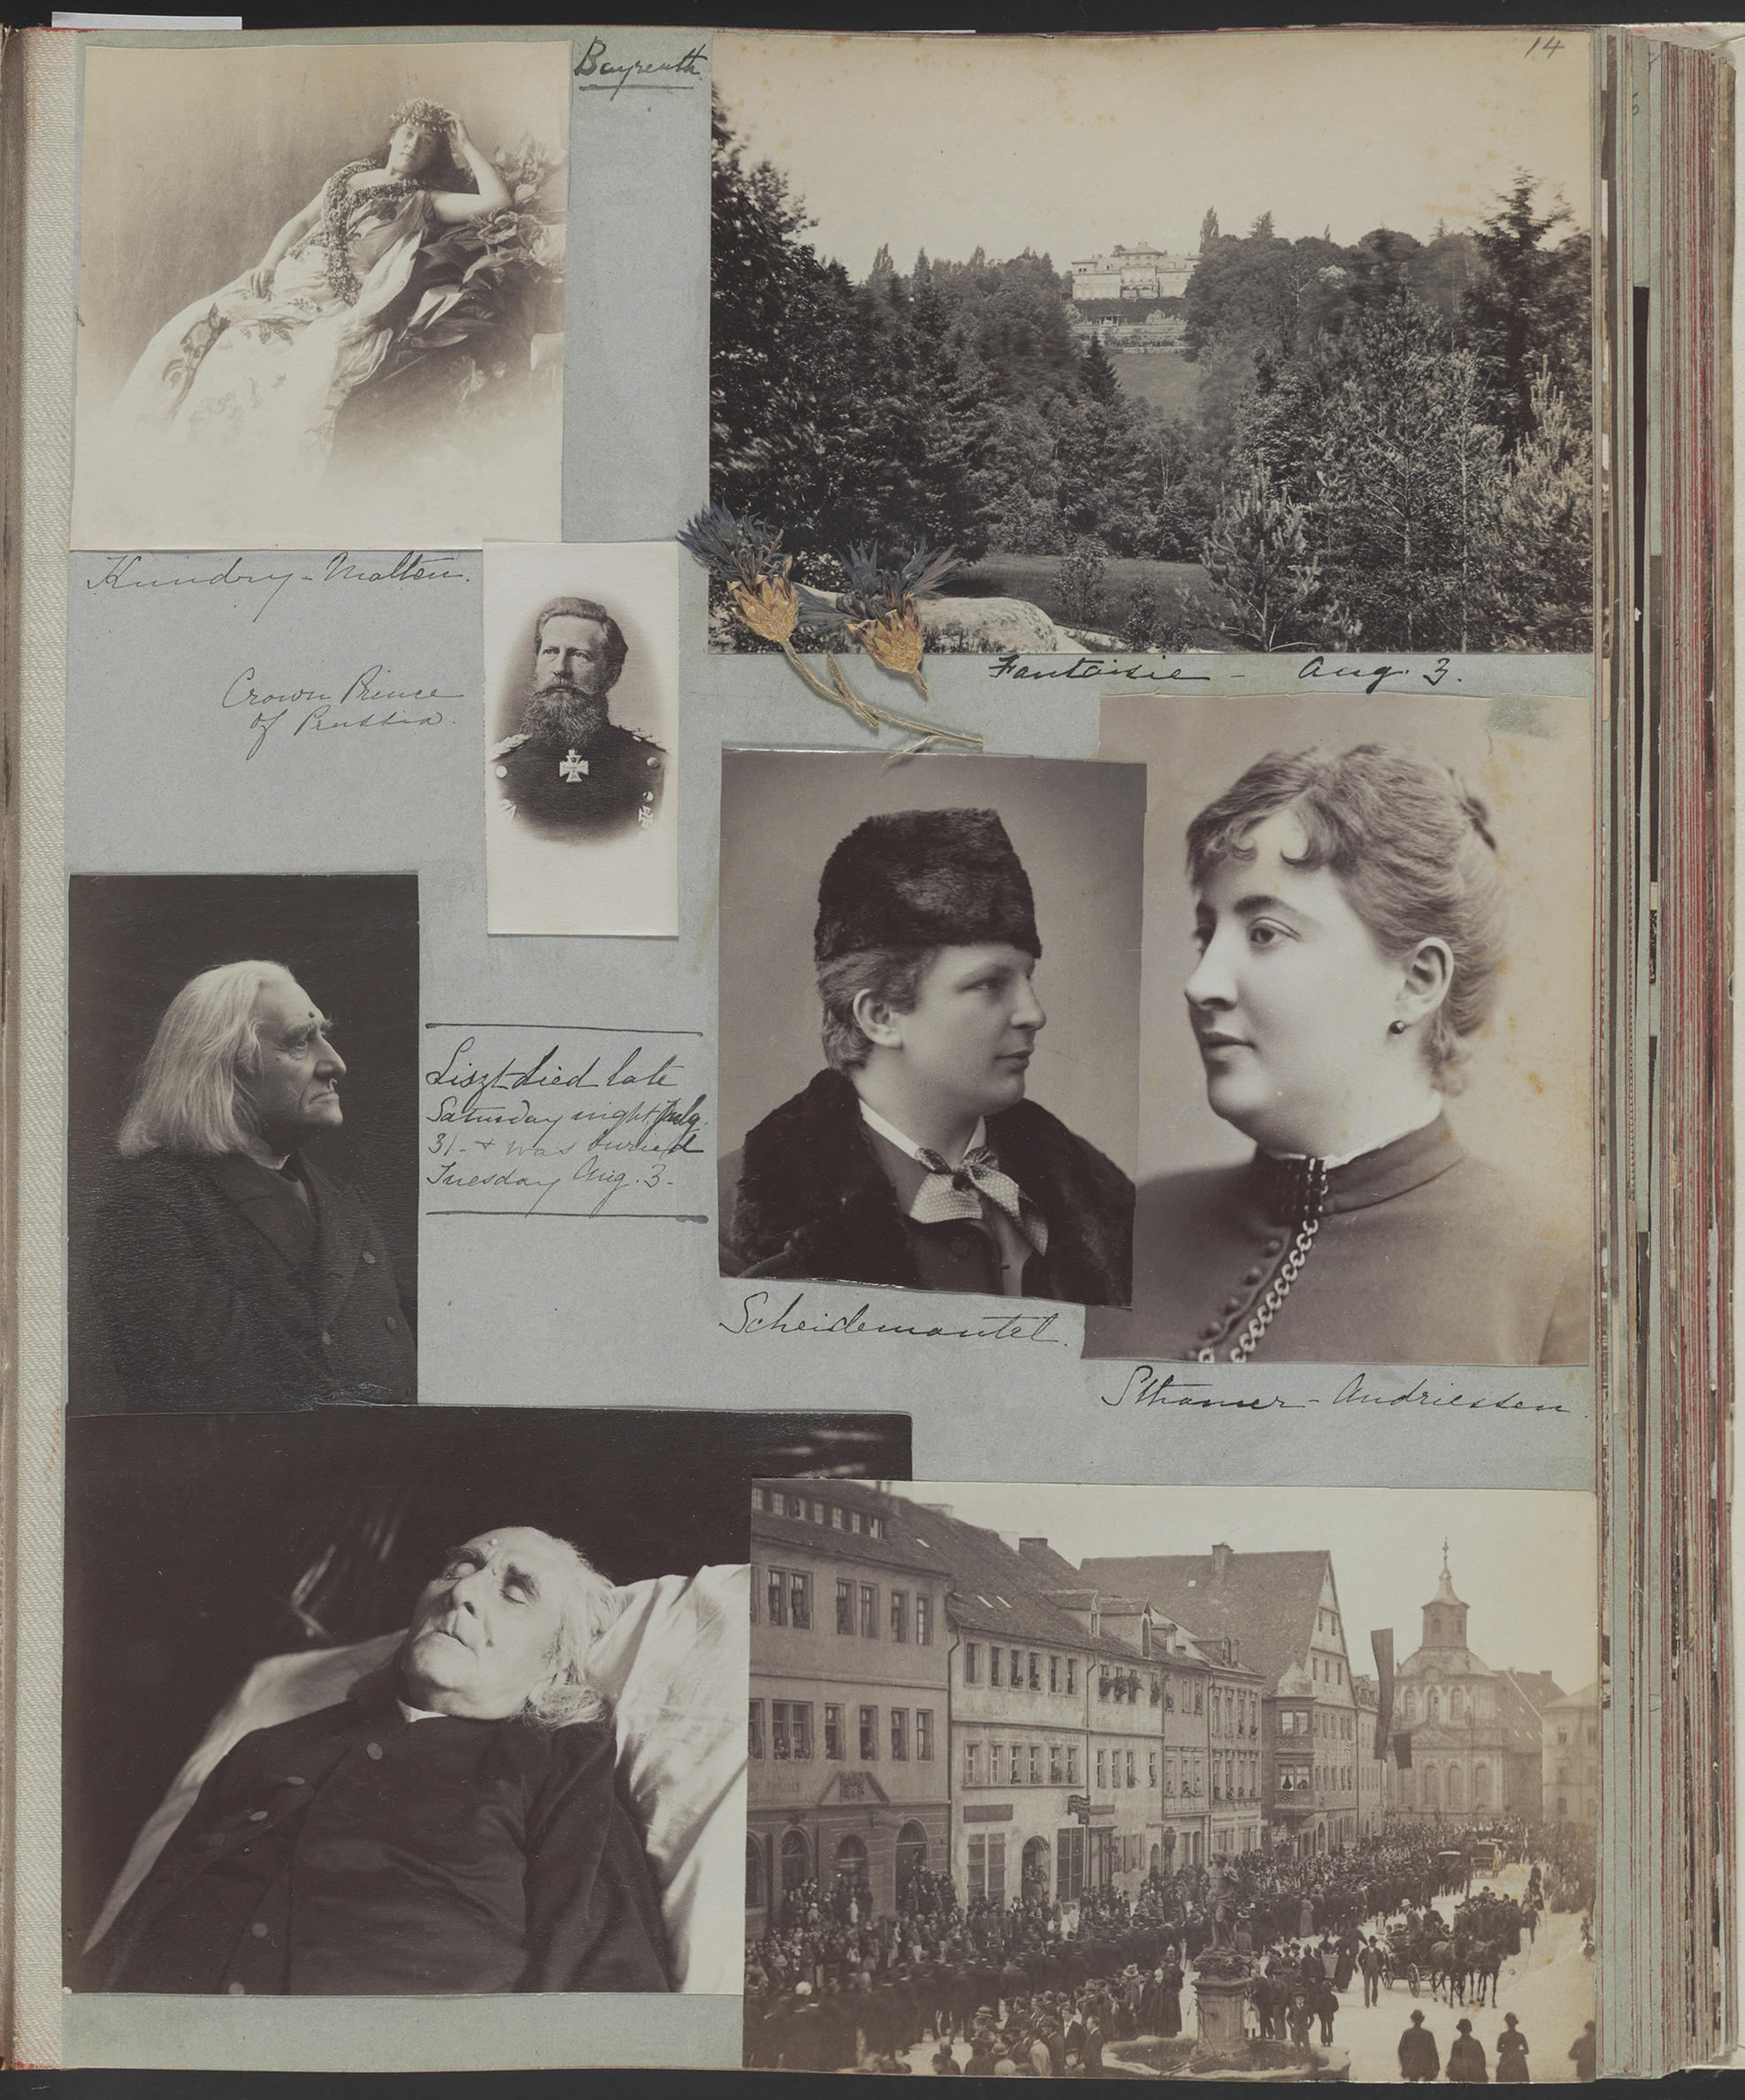 A page from a scrapbook with pictures of people.